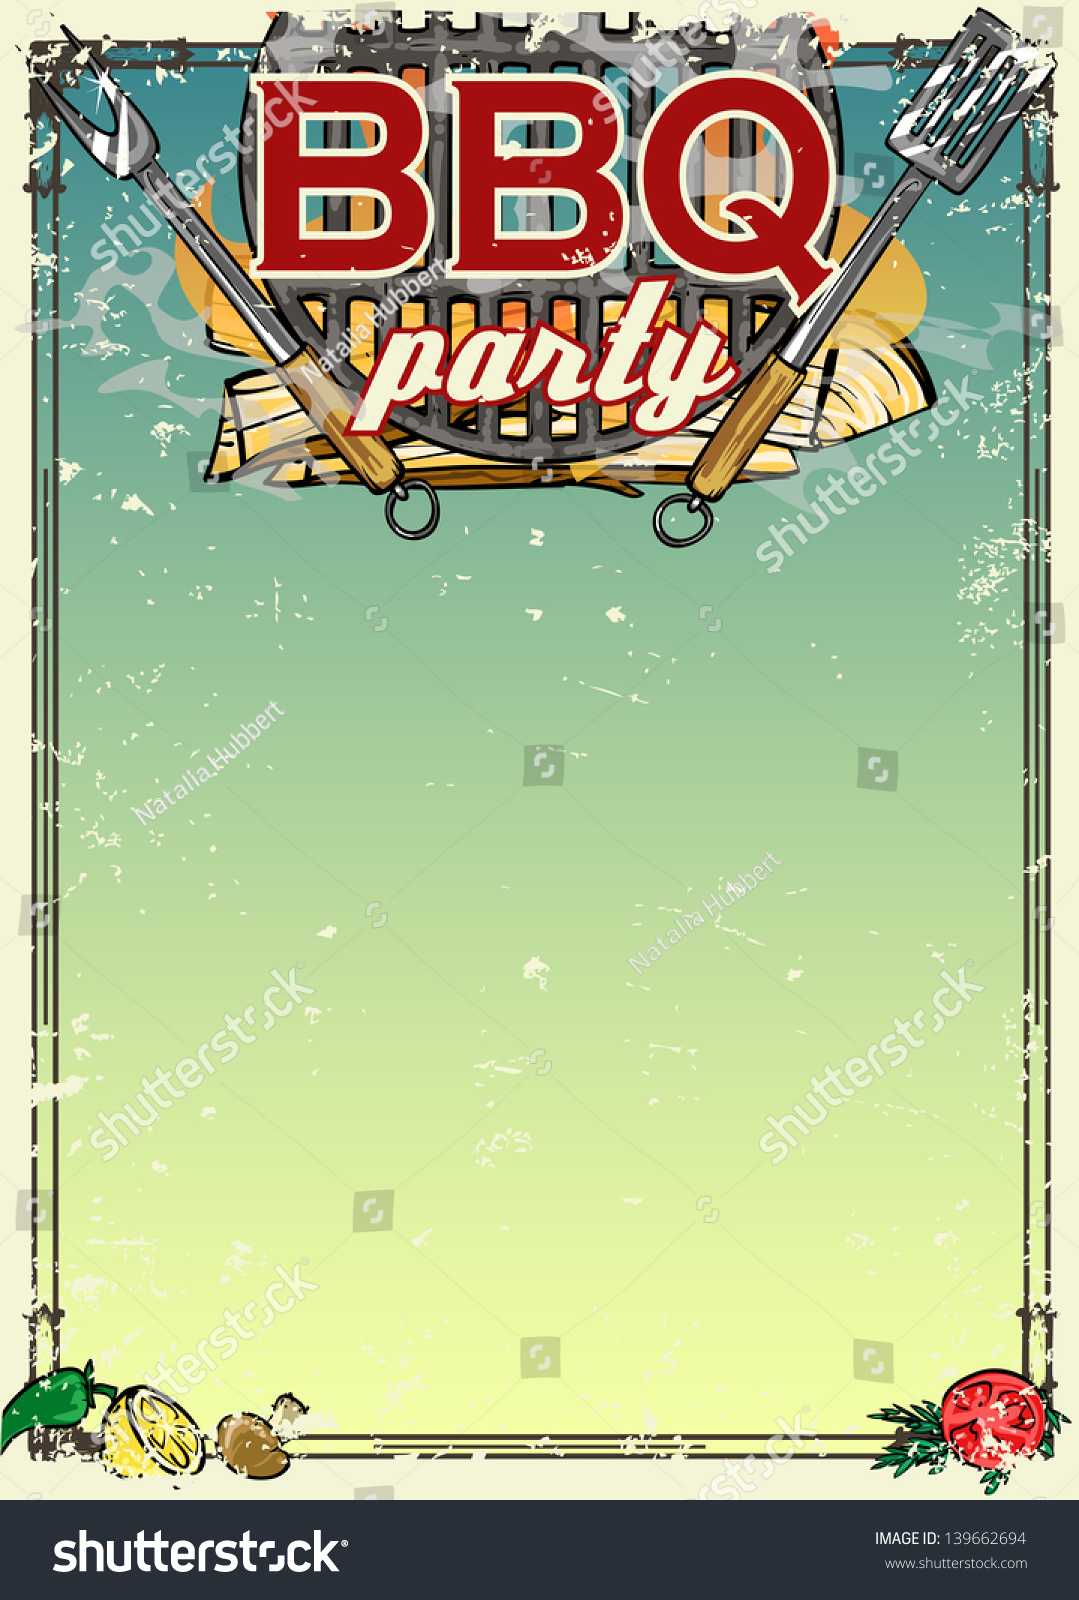 Barbecue Party Invitation Space Text Bbq Vector 139662694 – Space Party Invitation